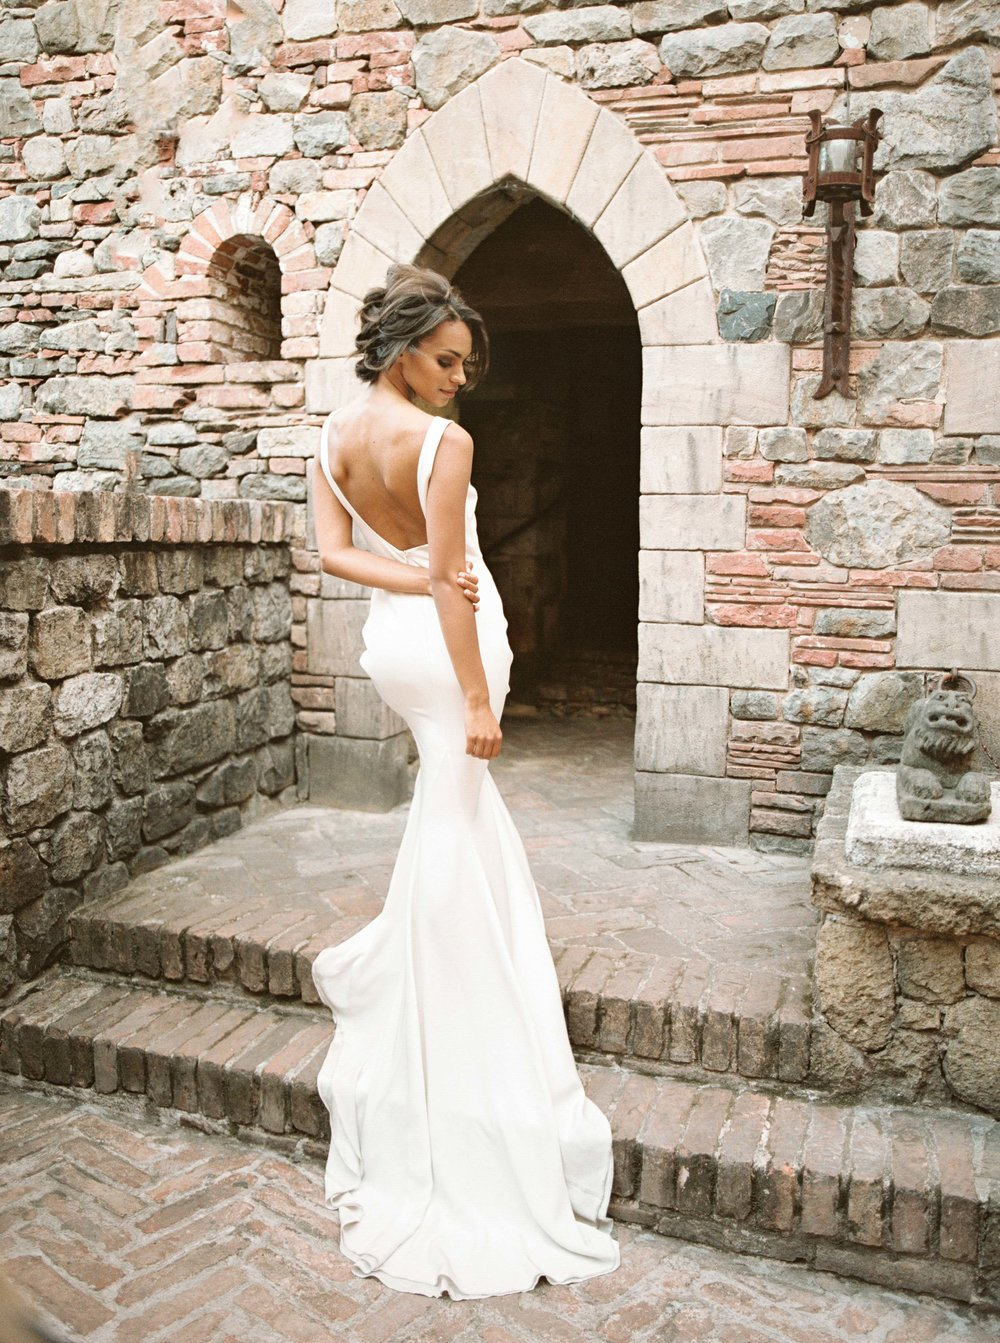 035napa_wedding_photographer_and_videographer_destination_and_elopement_photography.jpg